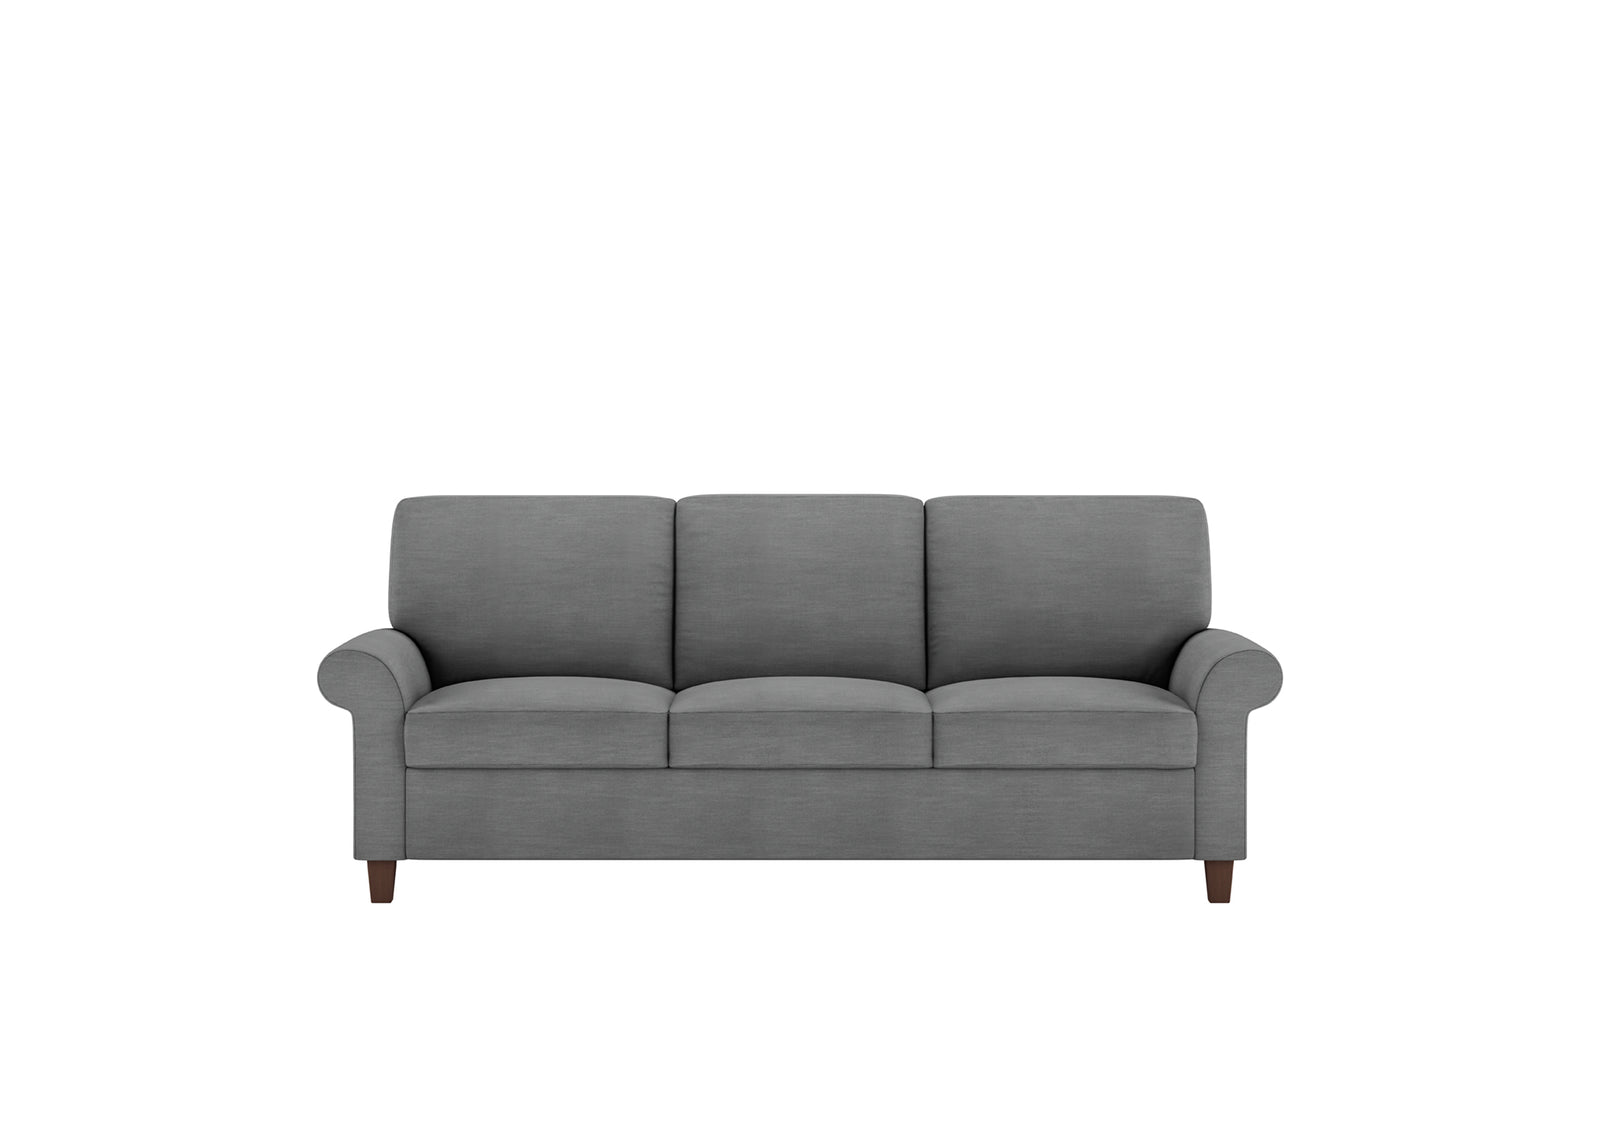 American Leather Comfort Sleepers and contemporary sofa beds ...